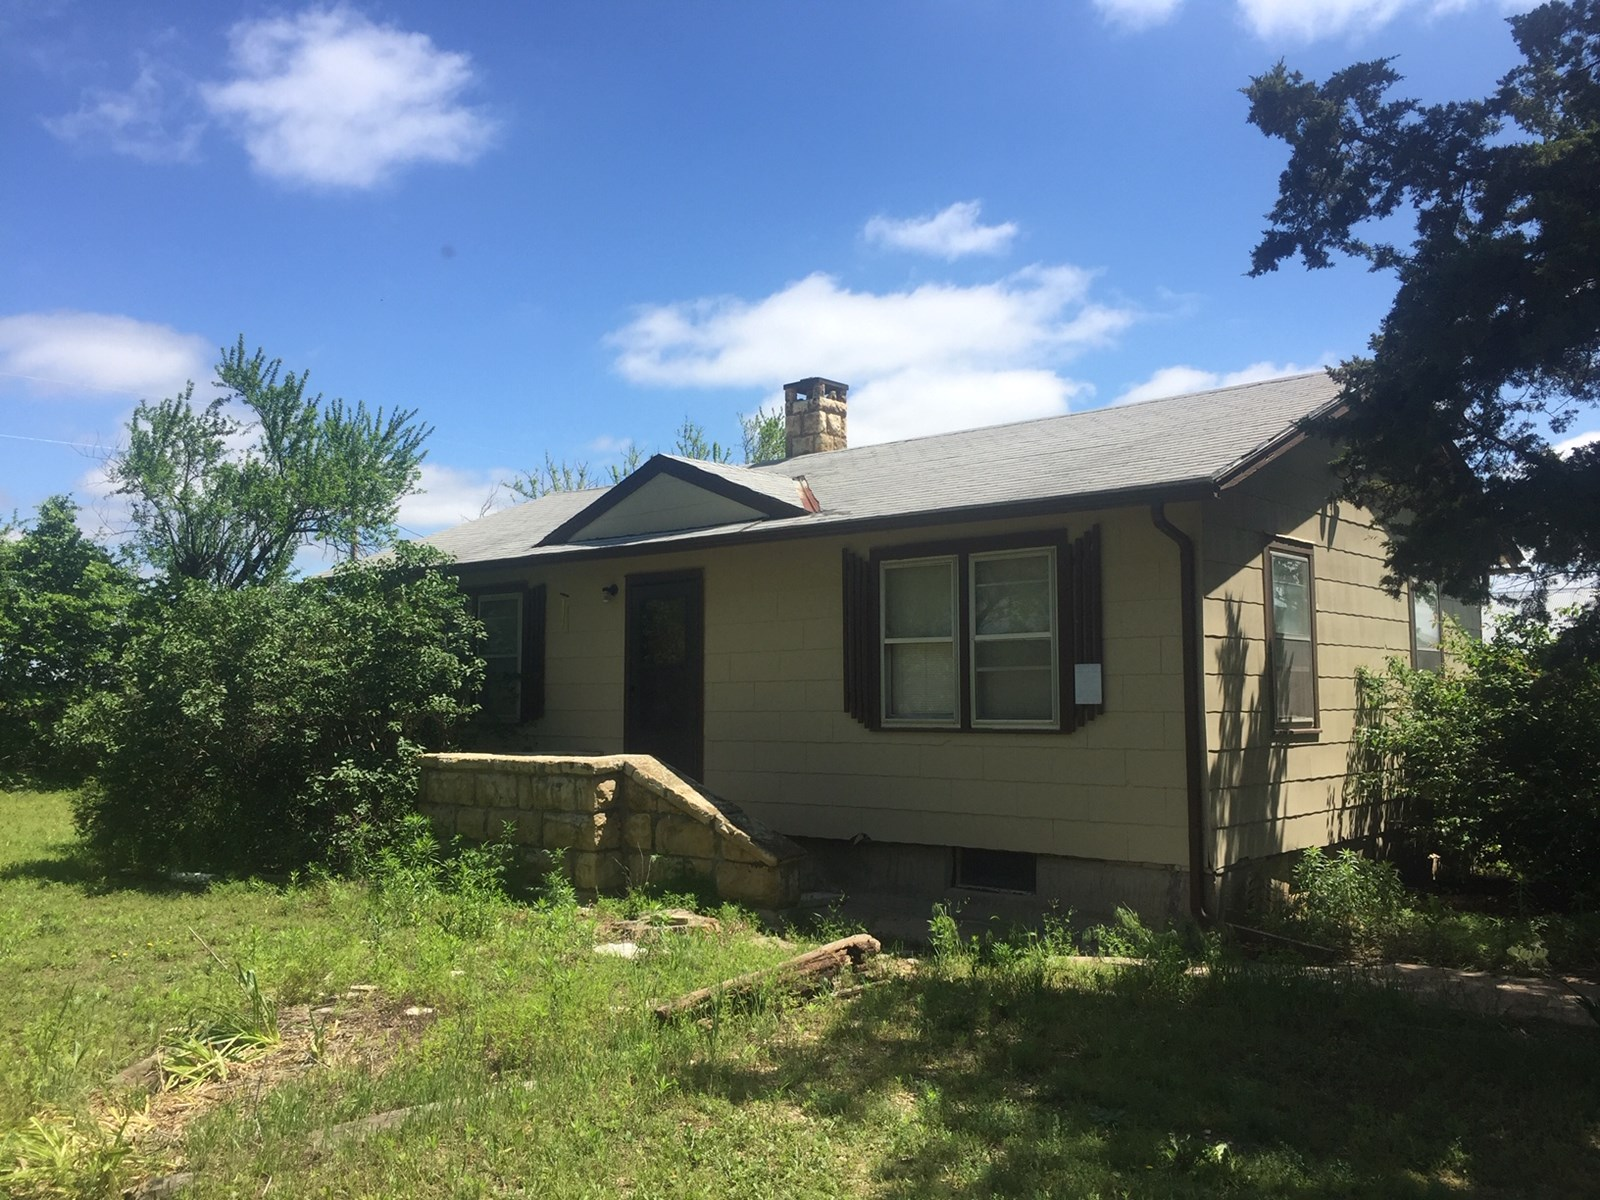 ONLINE AUCTION: 2 BEDROOM HOME ON 1 ACRE IN AUGUSTA, KS